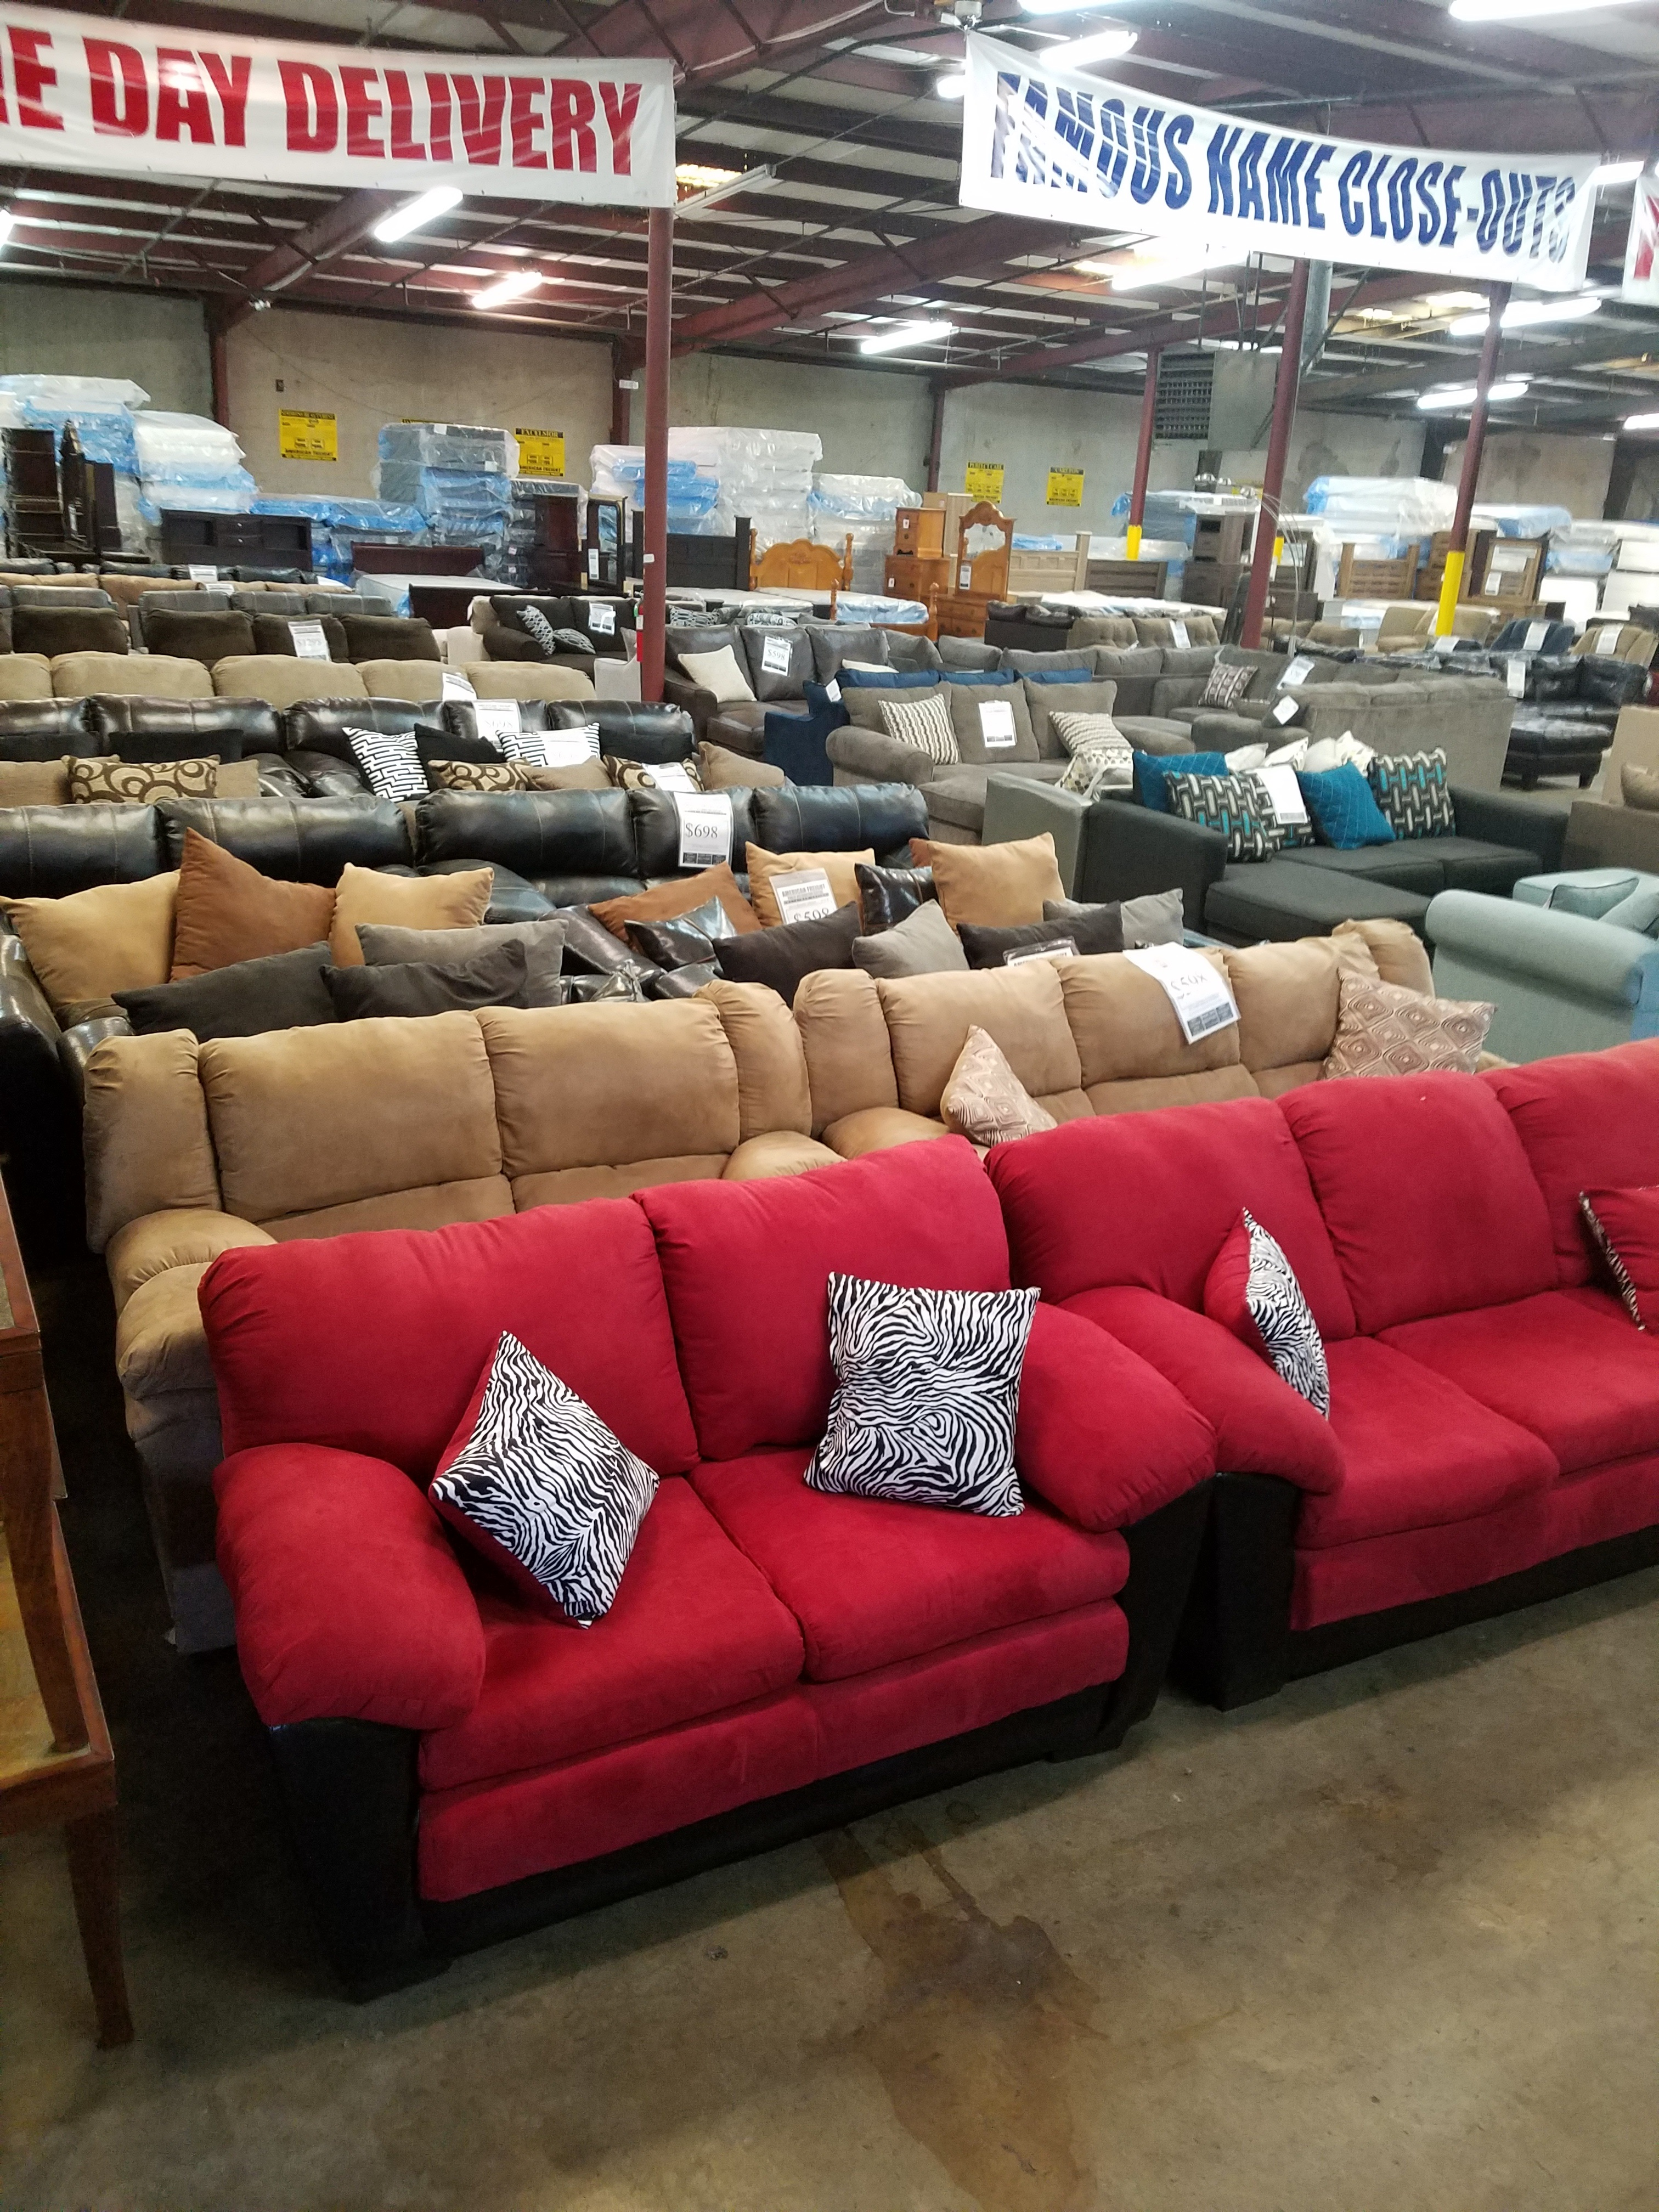 American Freight Furniture And Mattress In Shreveport La Furniture Stores Yellow Pages